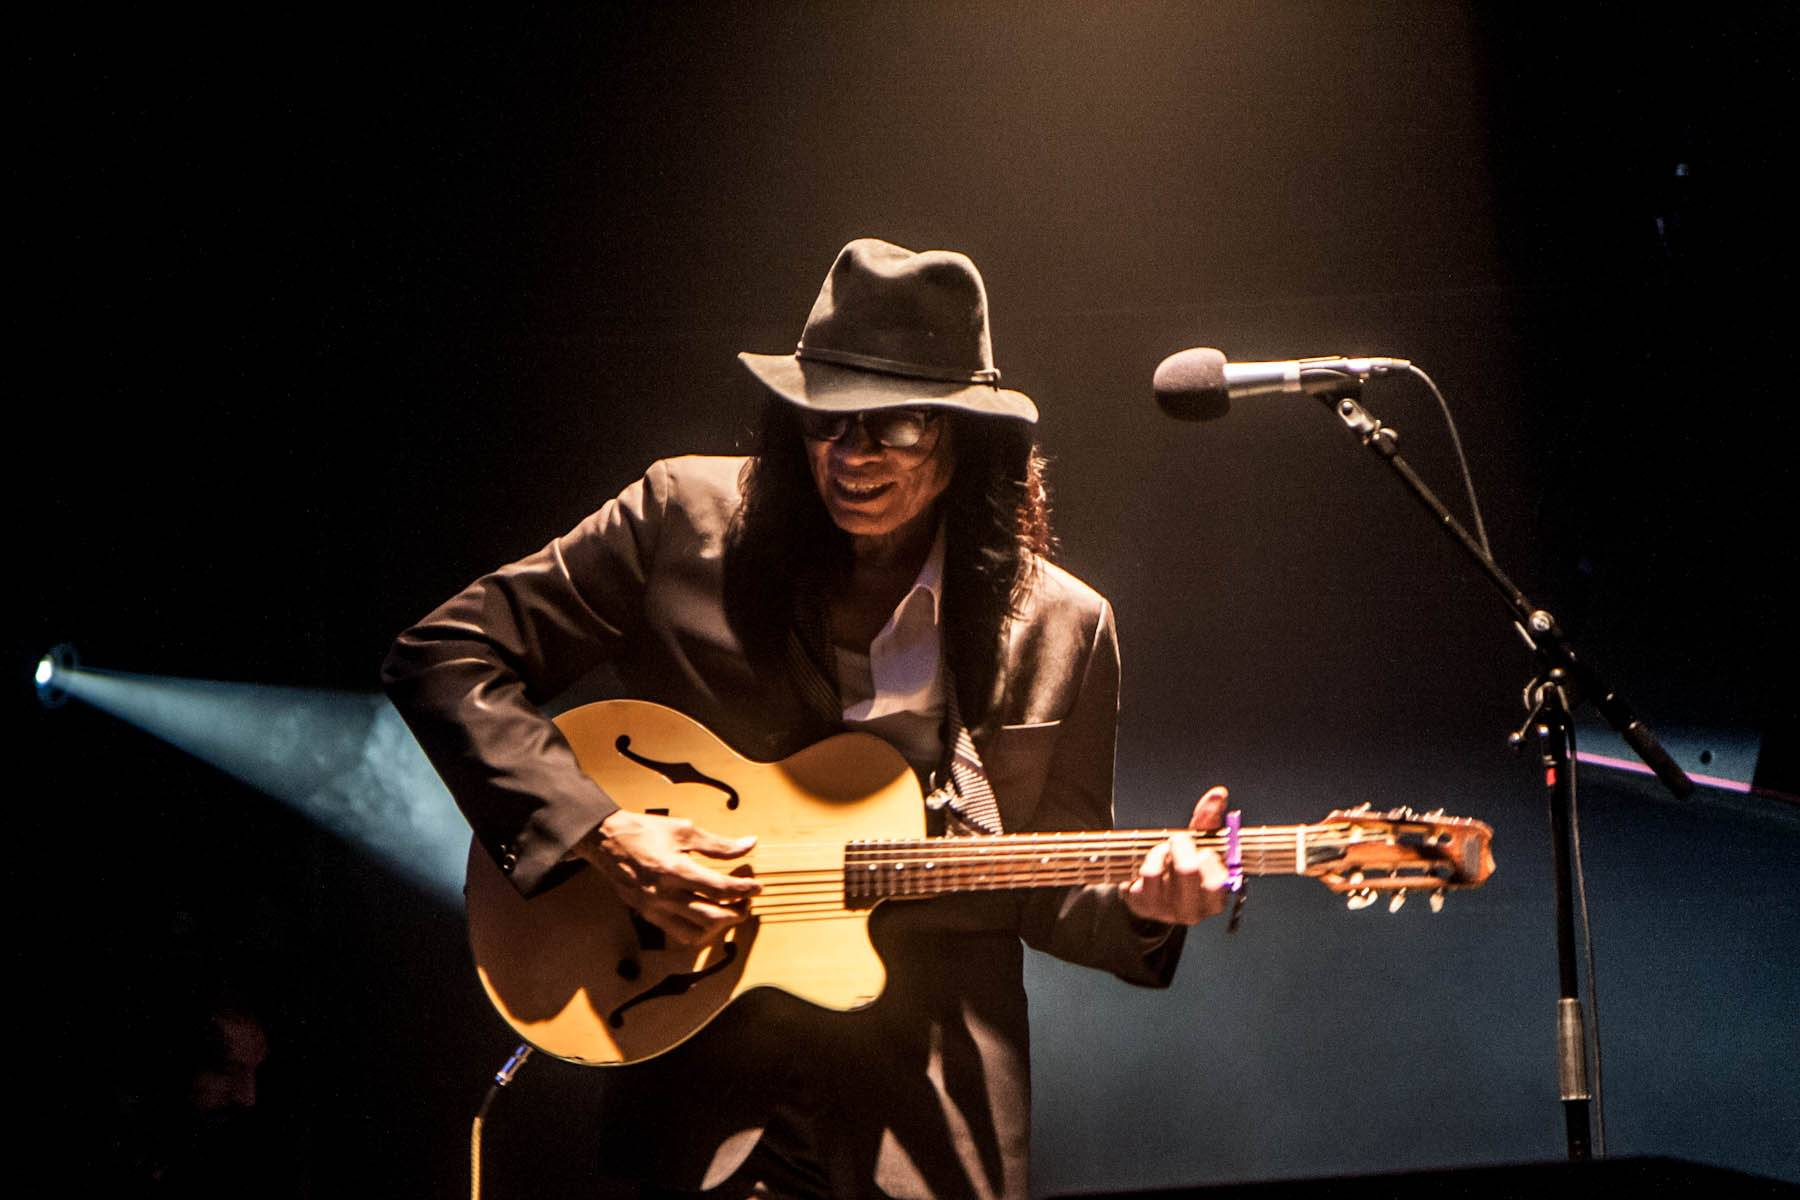 Rodriguez in Vancouver photo